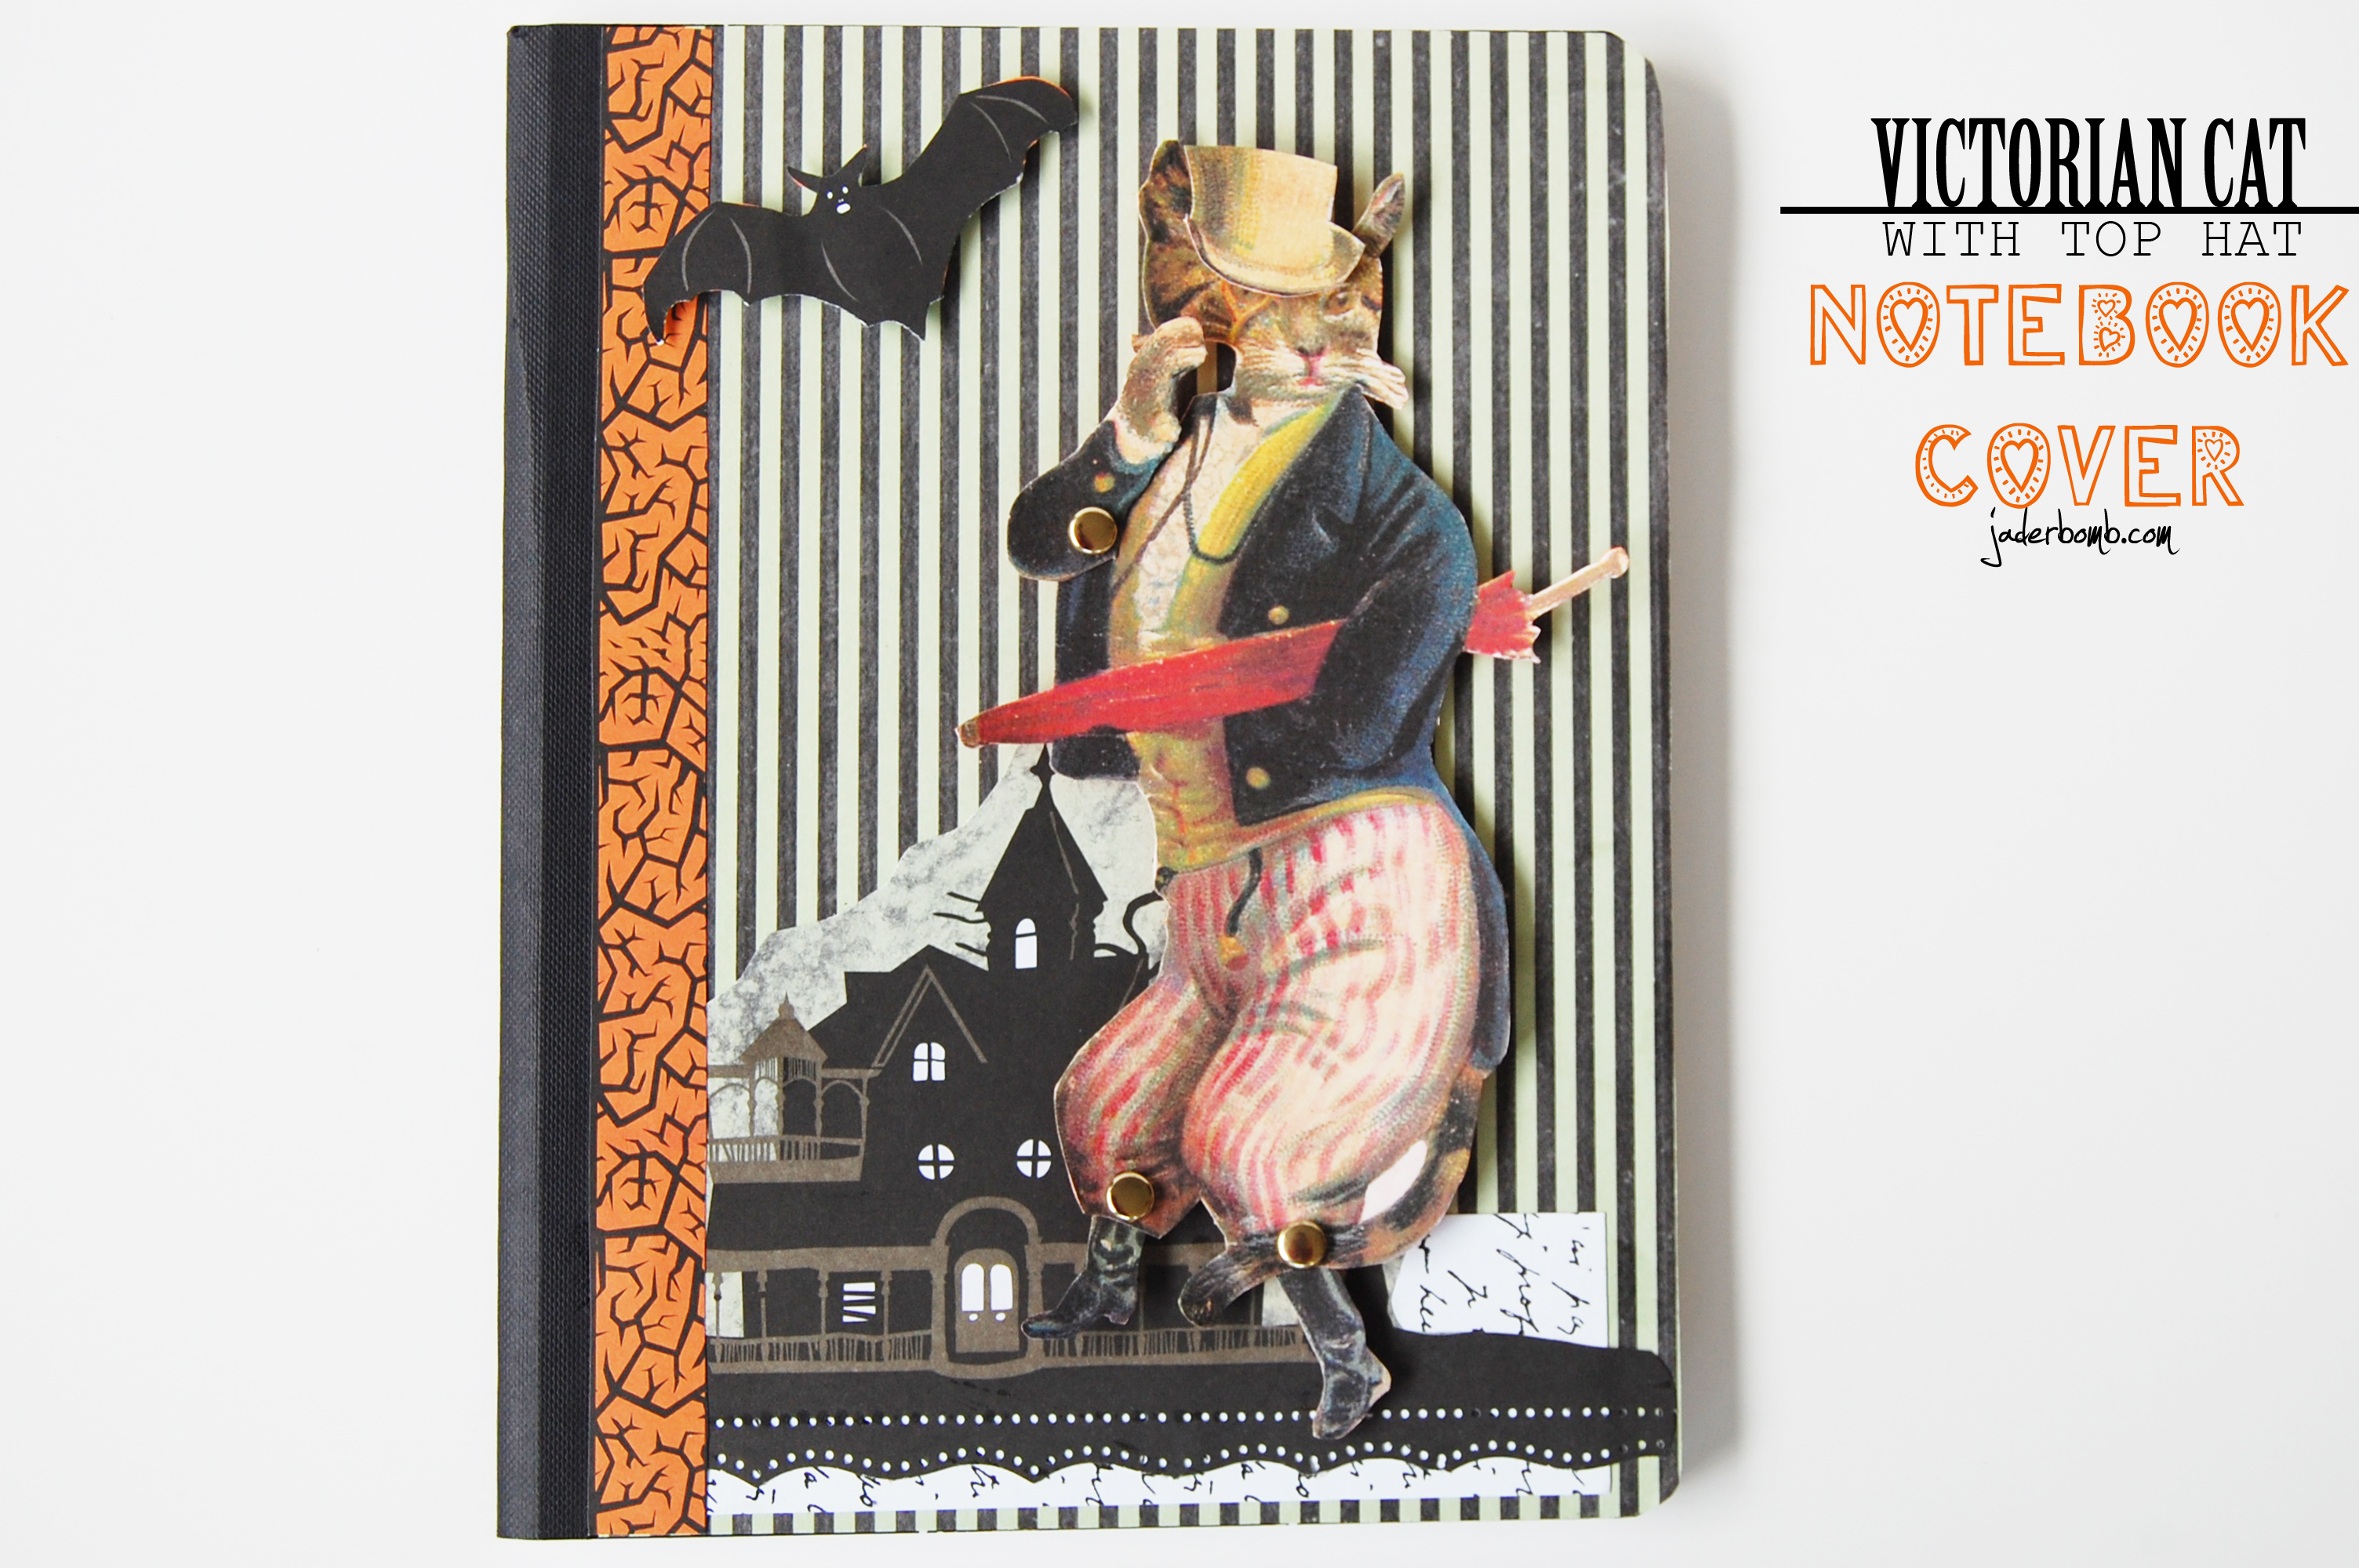 Victorian Cat Notebook Cover